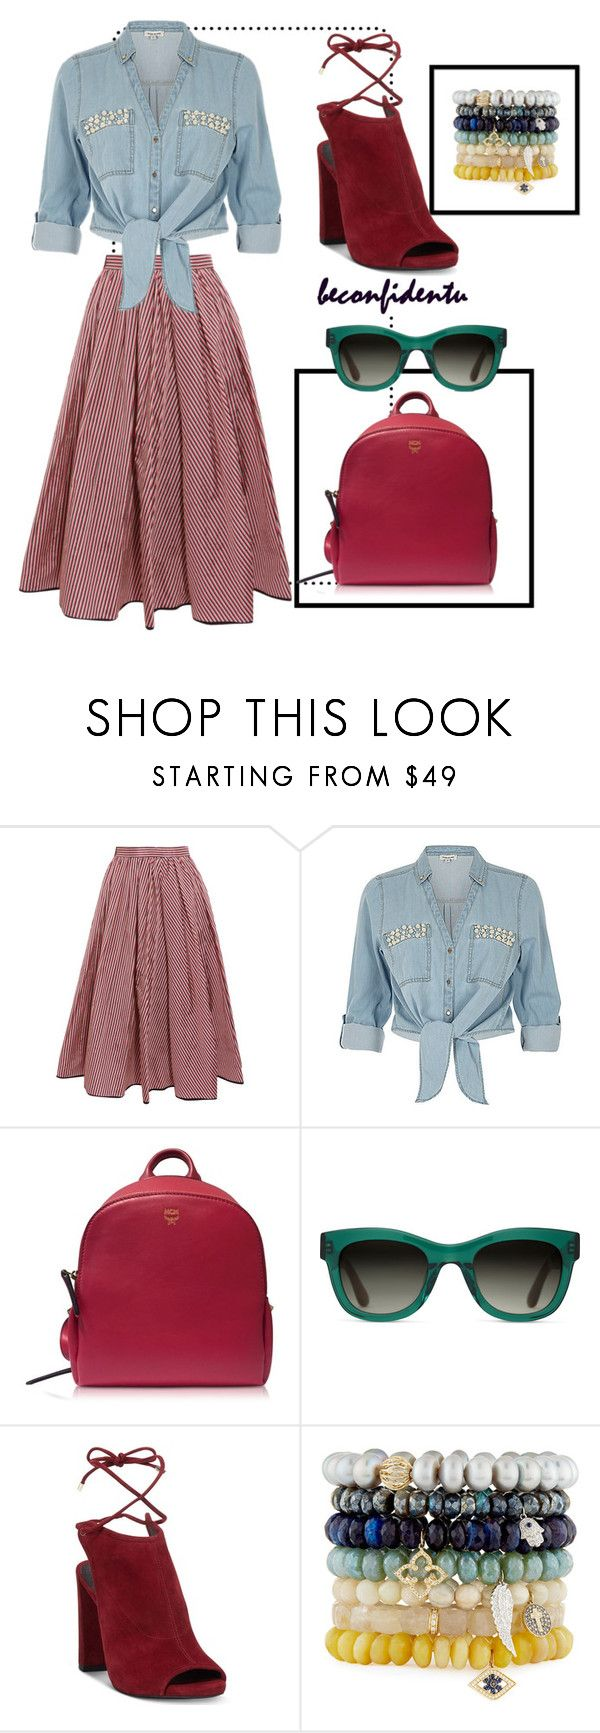 """""""Match Made"""" by beconfidentu on Polyvore featuring Tome, ZAK, MCM, TOMS, Kenneth Cole and Sydney Evan"""